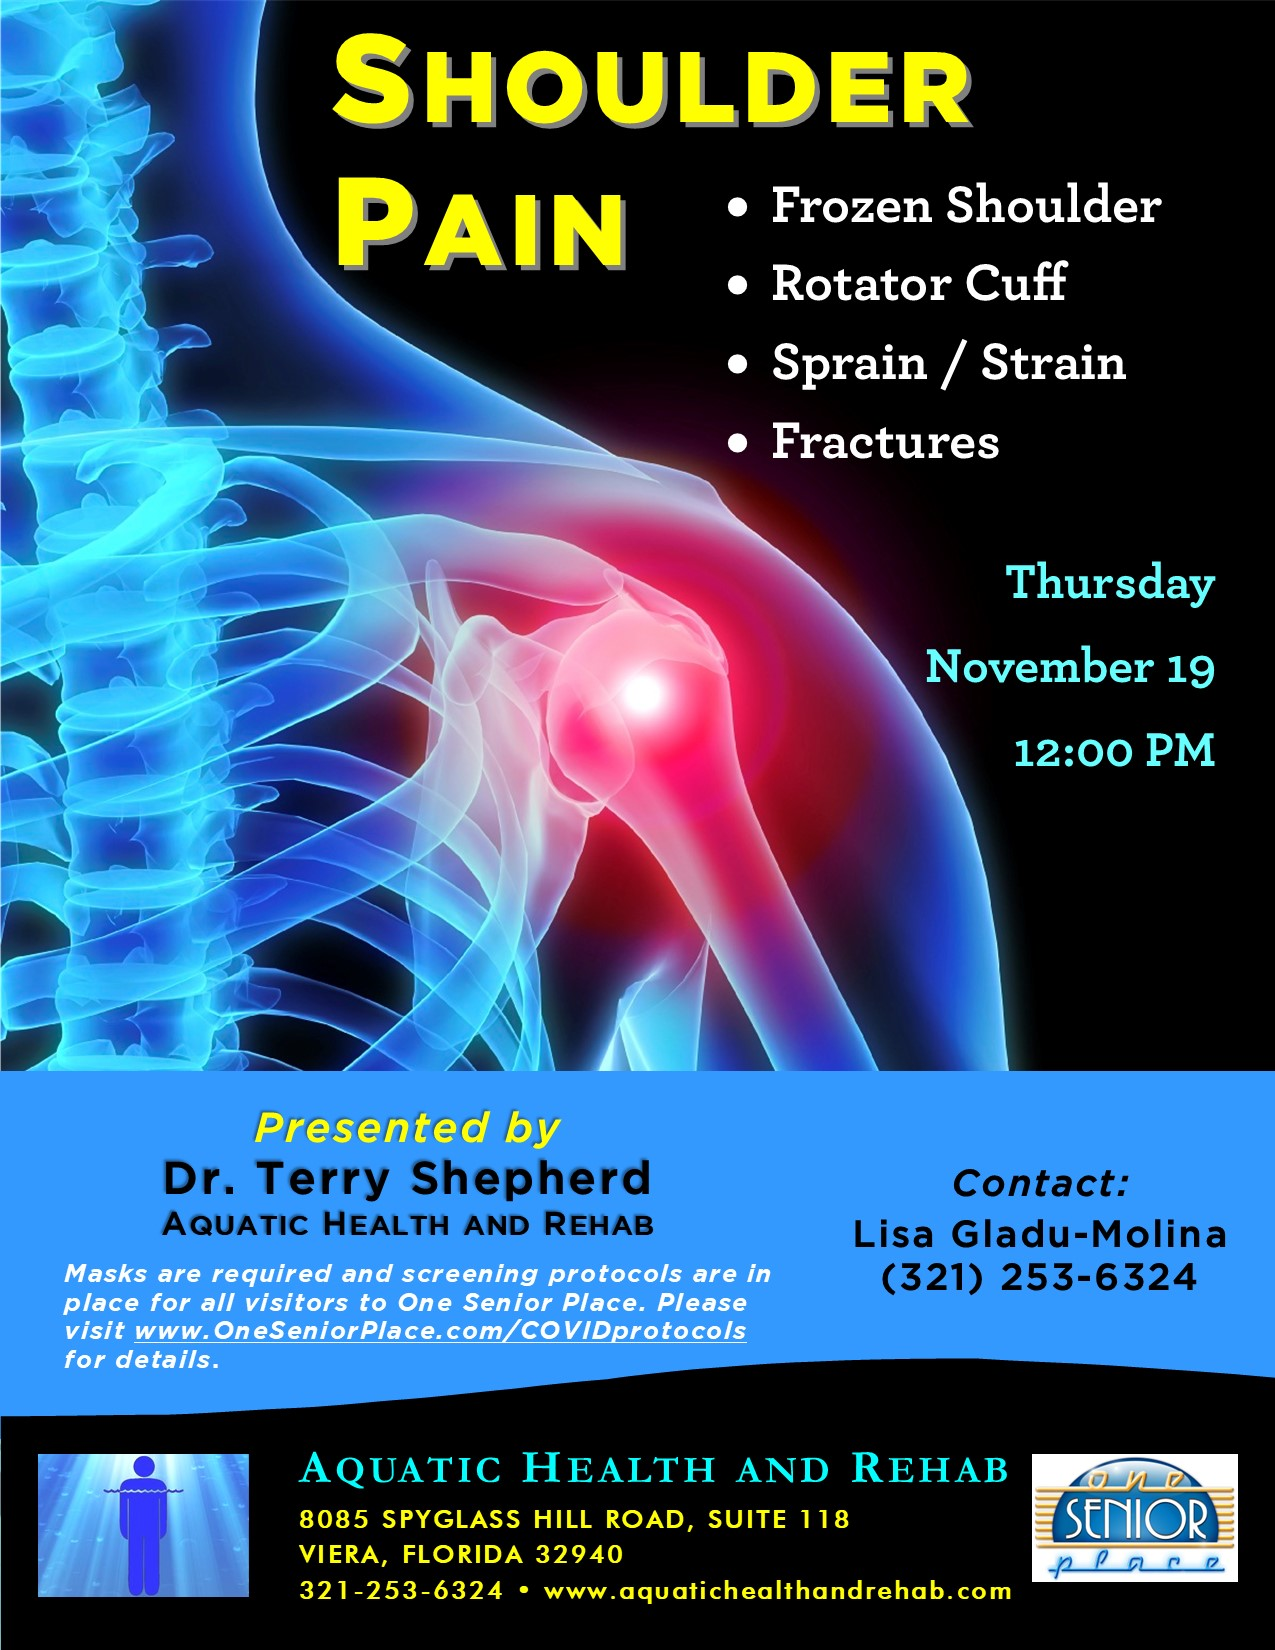 Shoulder Pain presented by Aquatic Health and Rehab